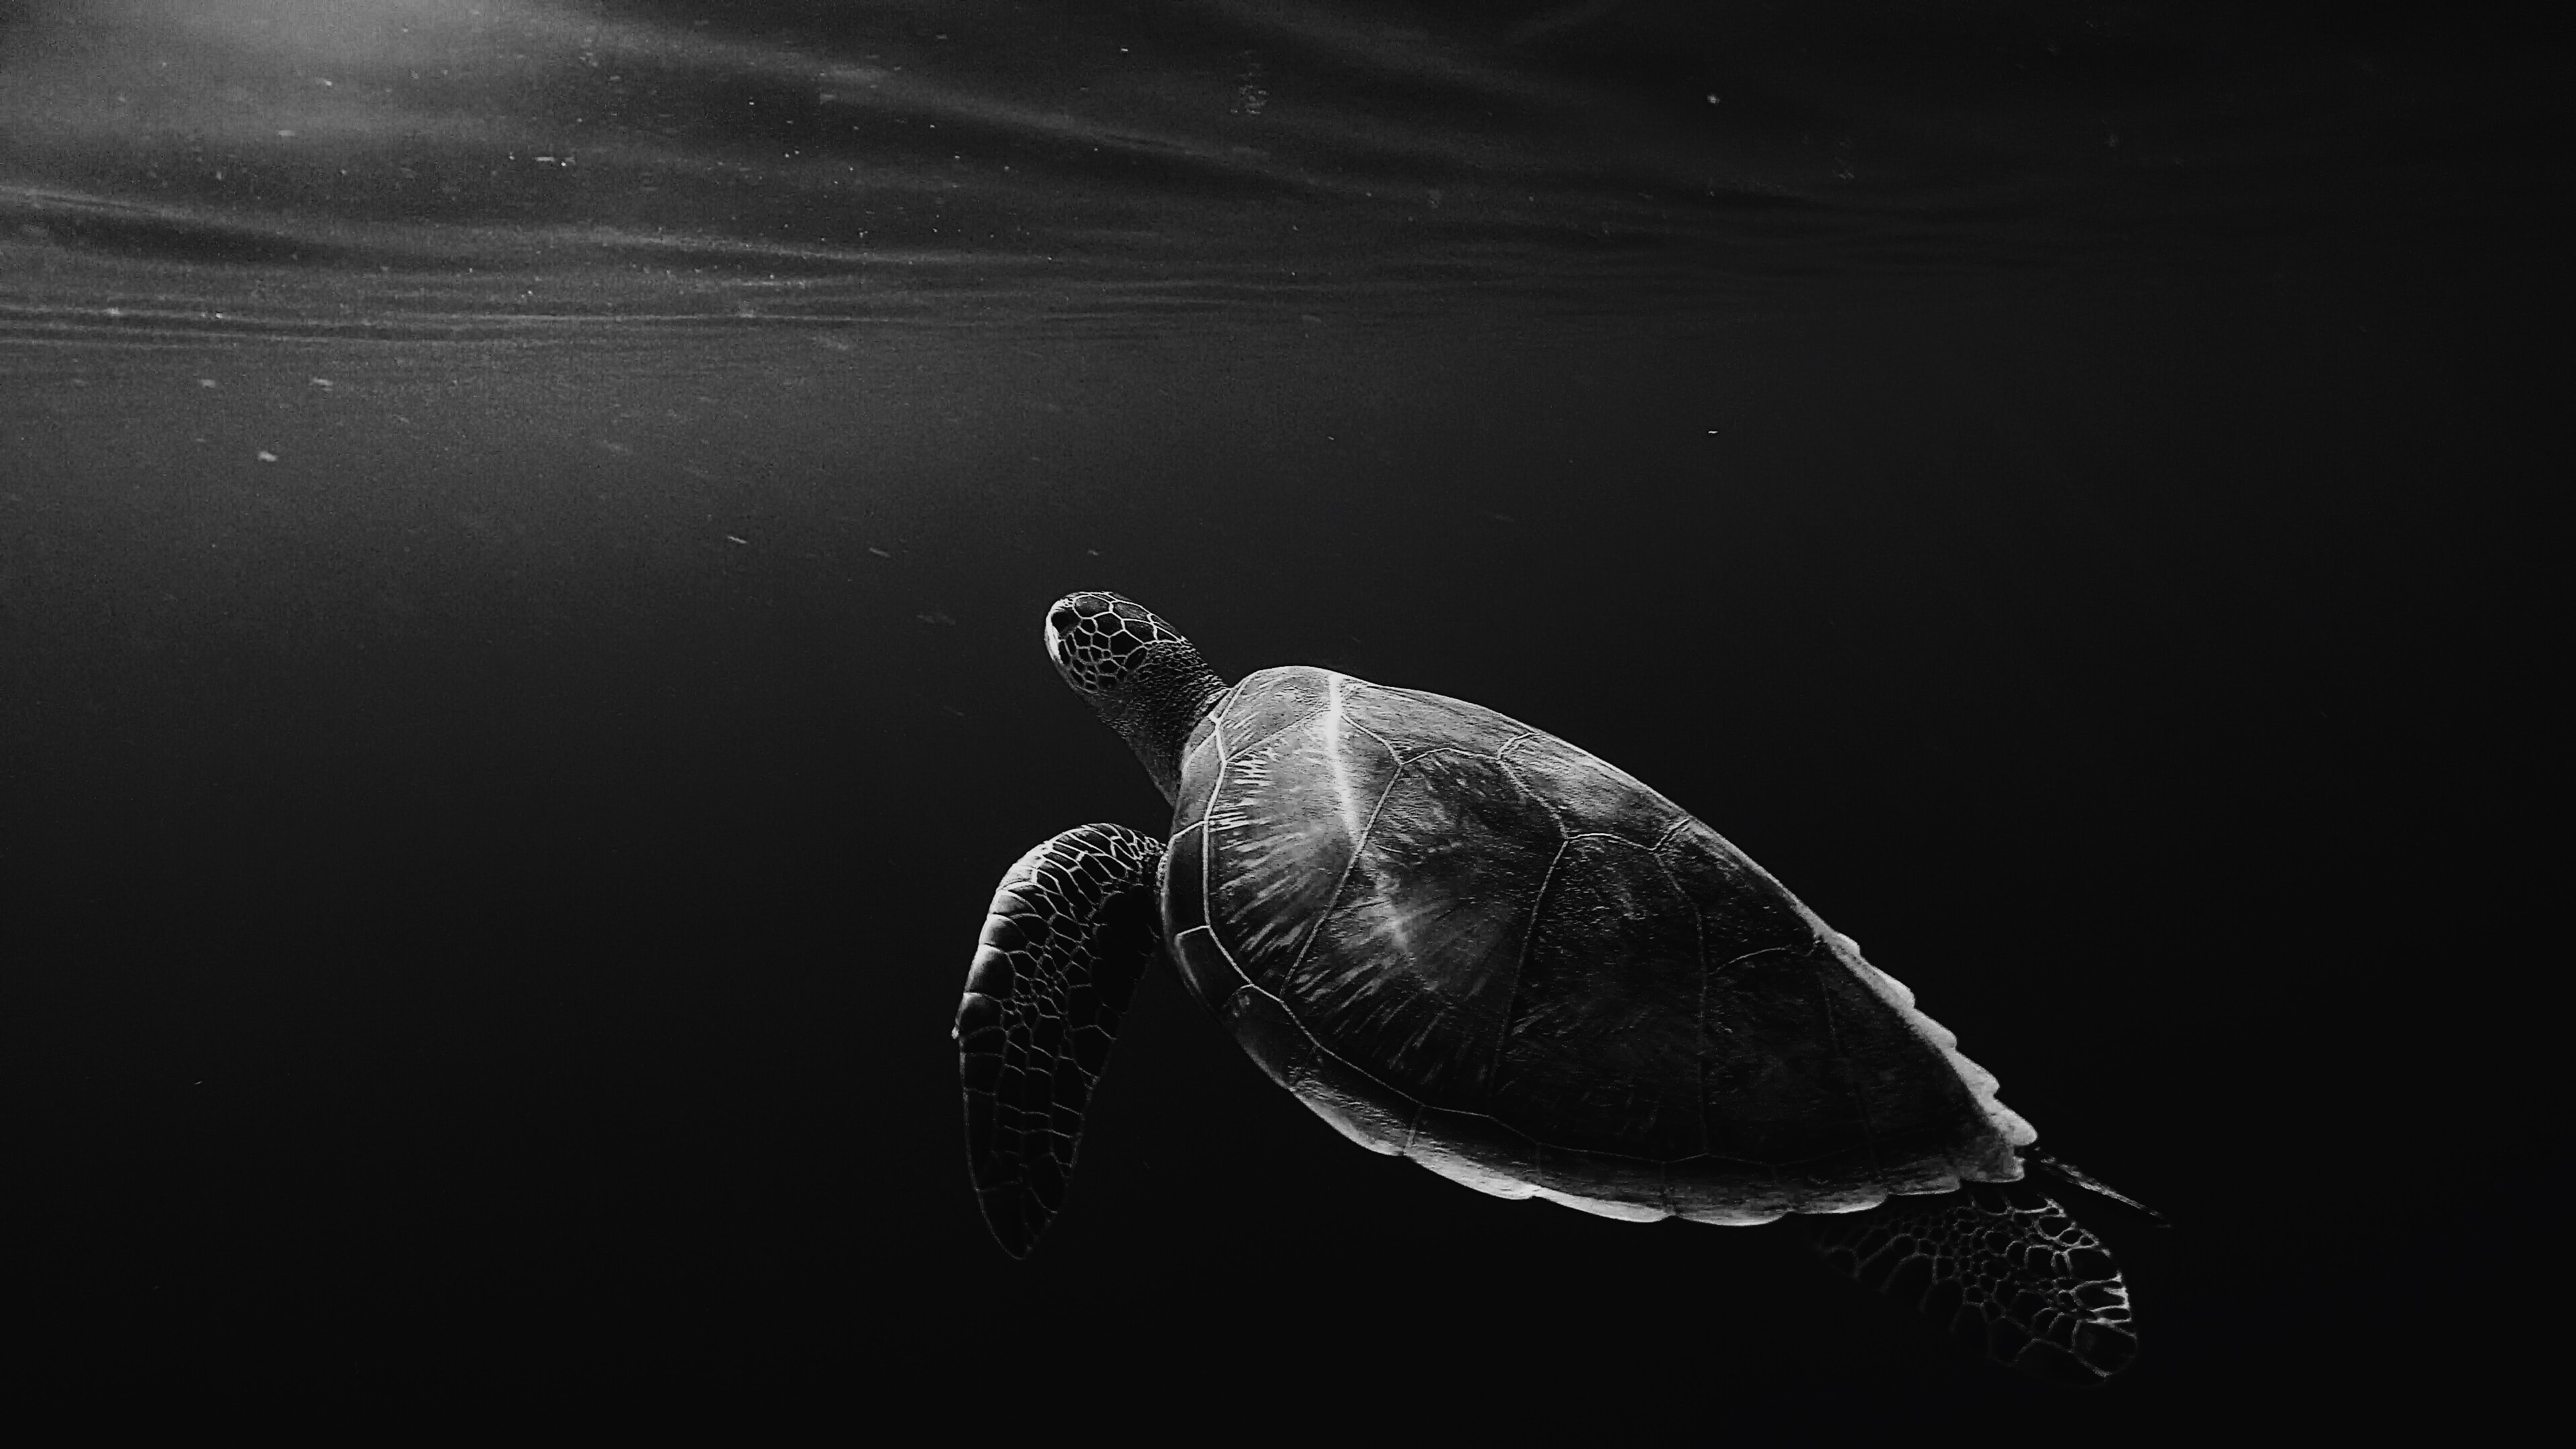 silhouette of sea turtle underwater